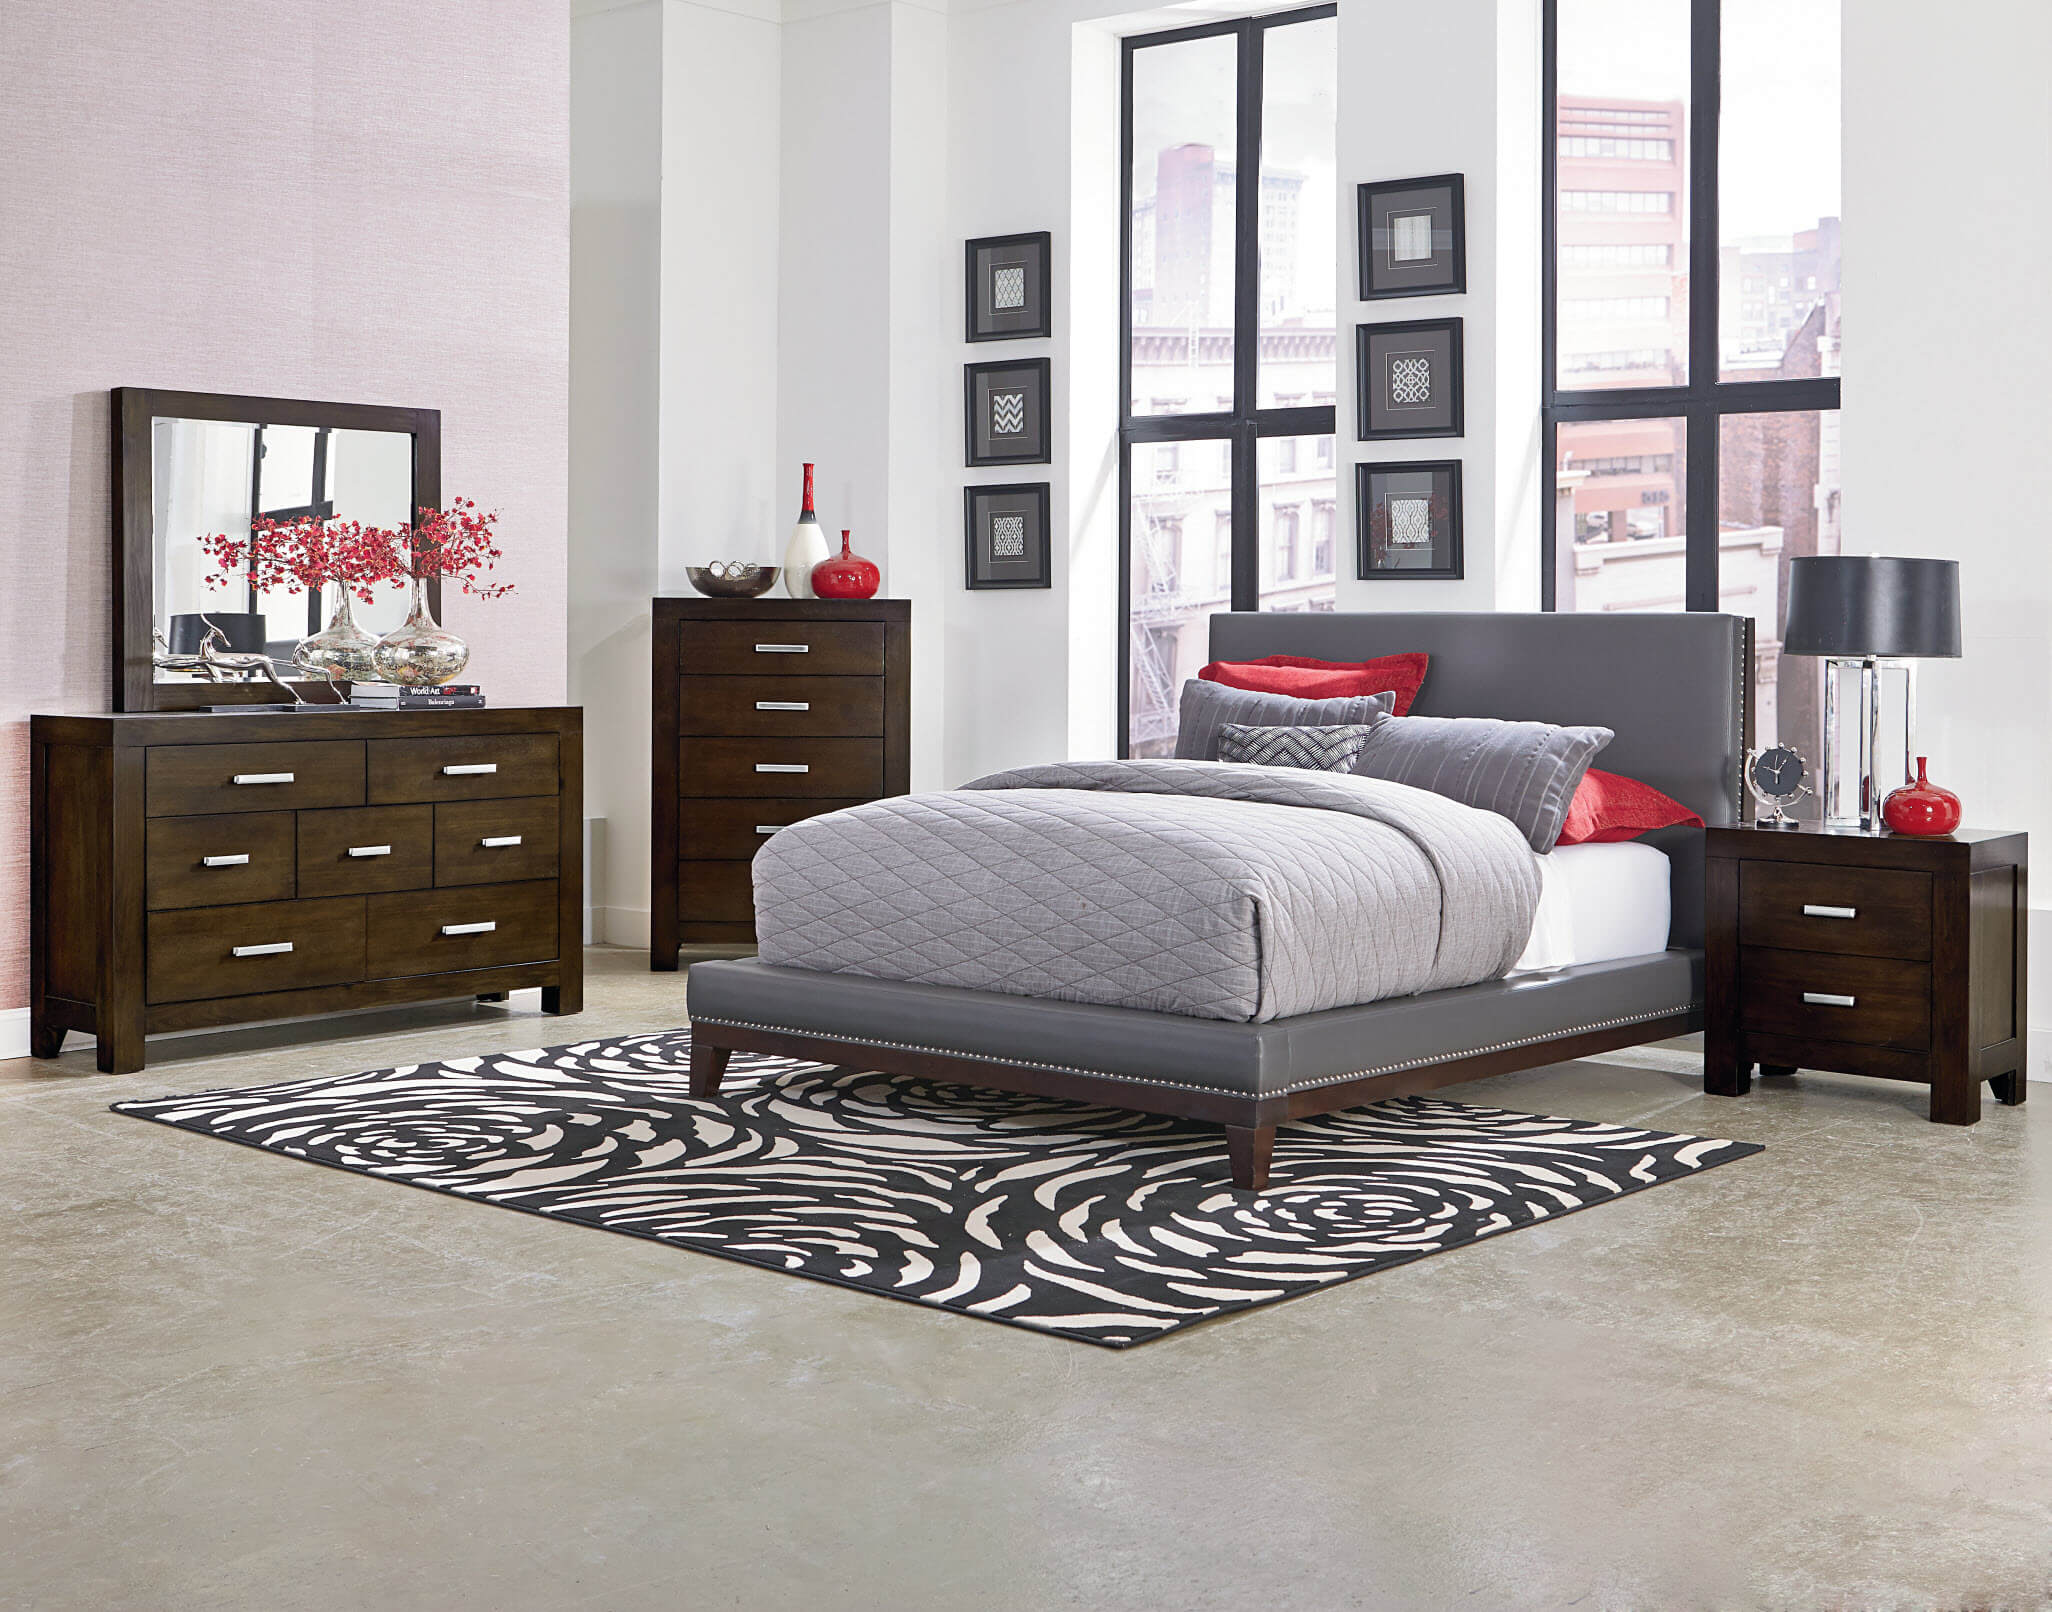 bedroom furniture sets - Grey Bedroom Furniture Set